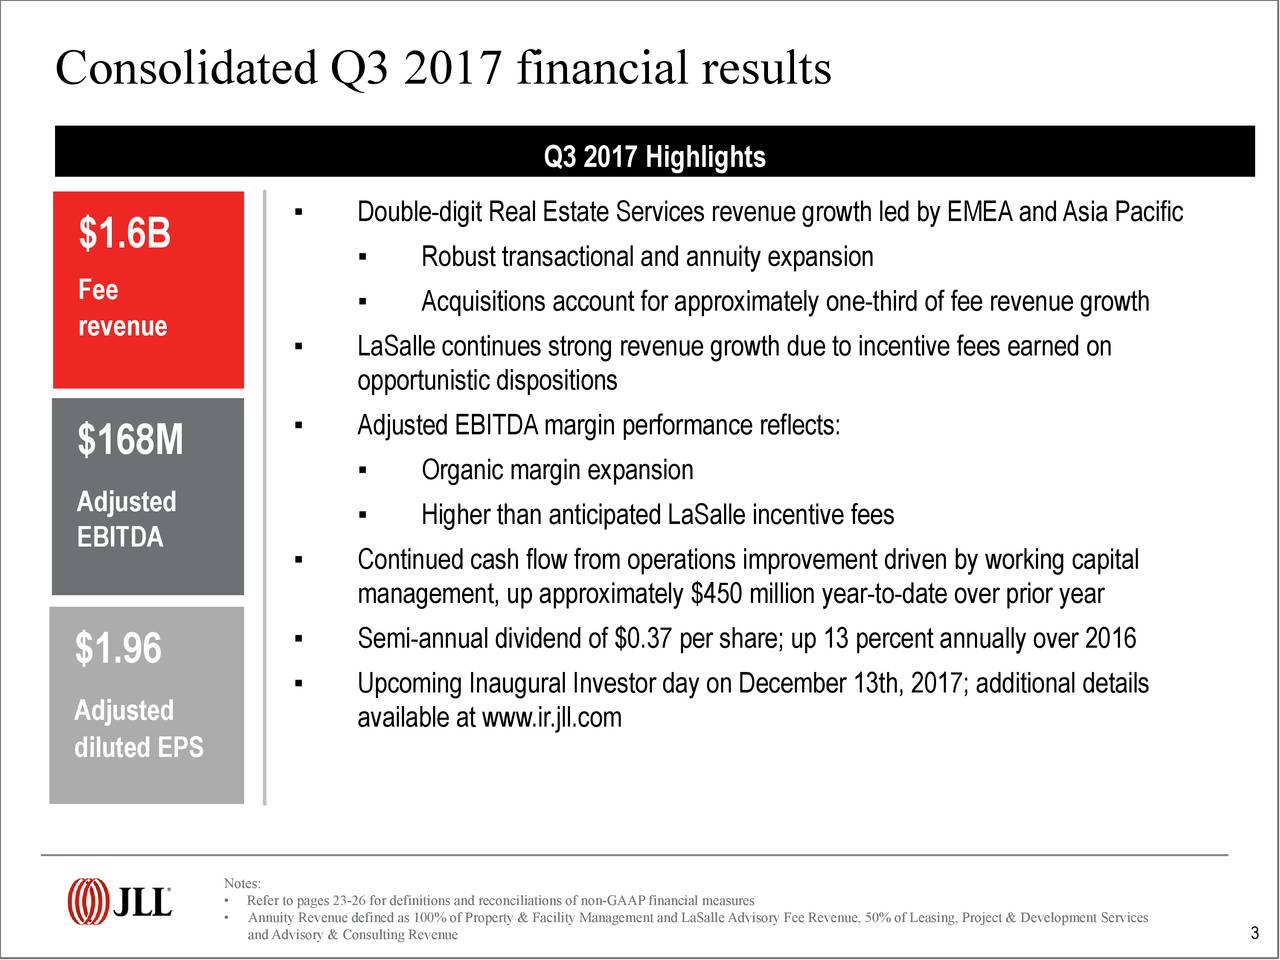 Q3 2017 Highlights ▪ Double-digit Real Estate Services revenue growth led by EMEAandAsia Pacific $1.6B ▪ Robust transactional and annuity expansion Fee ▪ Acquisitions account for approximately one-third of fee revenue growth revenue ▪ LaSalle continues strong revenue growth due to incentive fees earned on opportunistic dispositions ▪ Adjusted EBITDAmargin performance reflects: $168M ▪ Organic margin expansion Adjusted EBITDA ▪ Higher than anticipated LaSalle incentive fees ▪ Continued cash flow from operations improvement driven by working capital management, up approximately $450 million year-to-date over prior year $1.96 ▪ Semi-annual dividend of $0.37 per share; up 13 percent annually over 2016 Adjusted ▪ Upcoming Inaugural Investor day on December 13th, 2017; additional details available at www.ir.jll.com diluted EPS Notes: • Refer to pages 23-26 for definitions and reconciliations of non-GAAP financial measures • andAdvisory & Consulting Revenueof Property & Facility Management and LaSalleAdvisory Fee Revenu3, 50% of Leasing, Project & Development Services